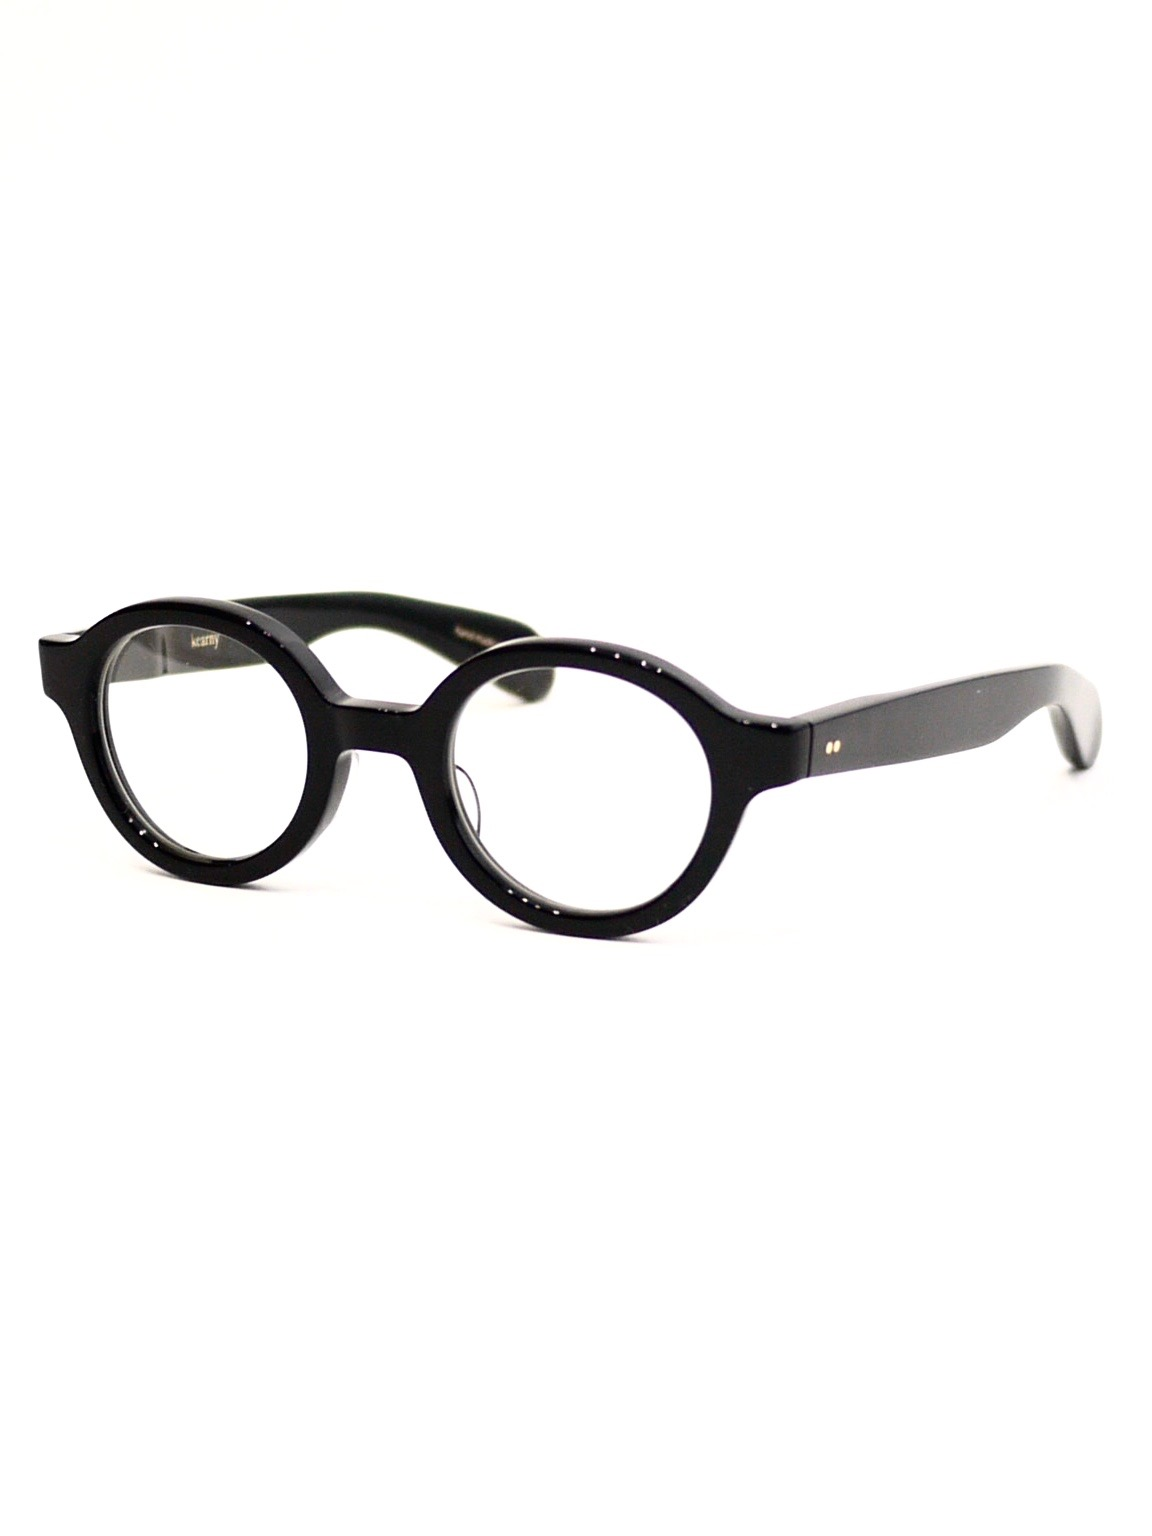 kearny / peter / black (clear lens)